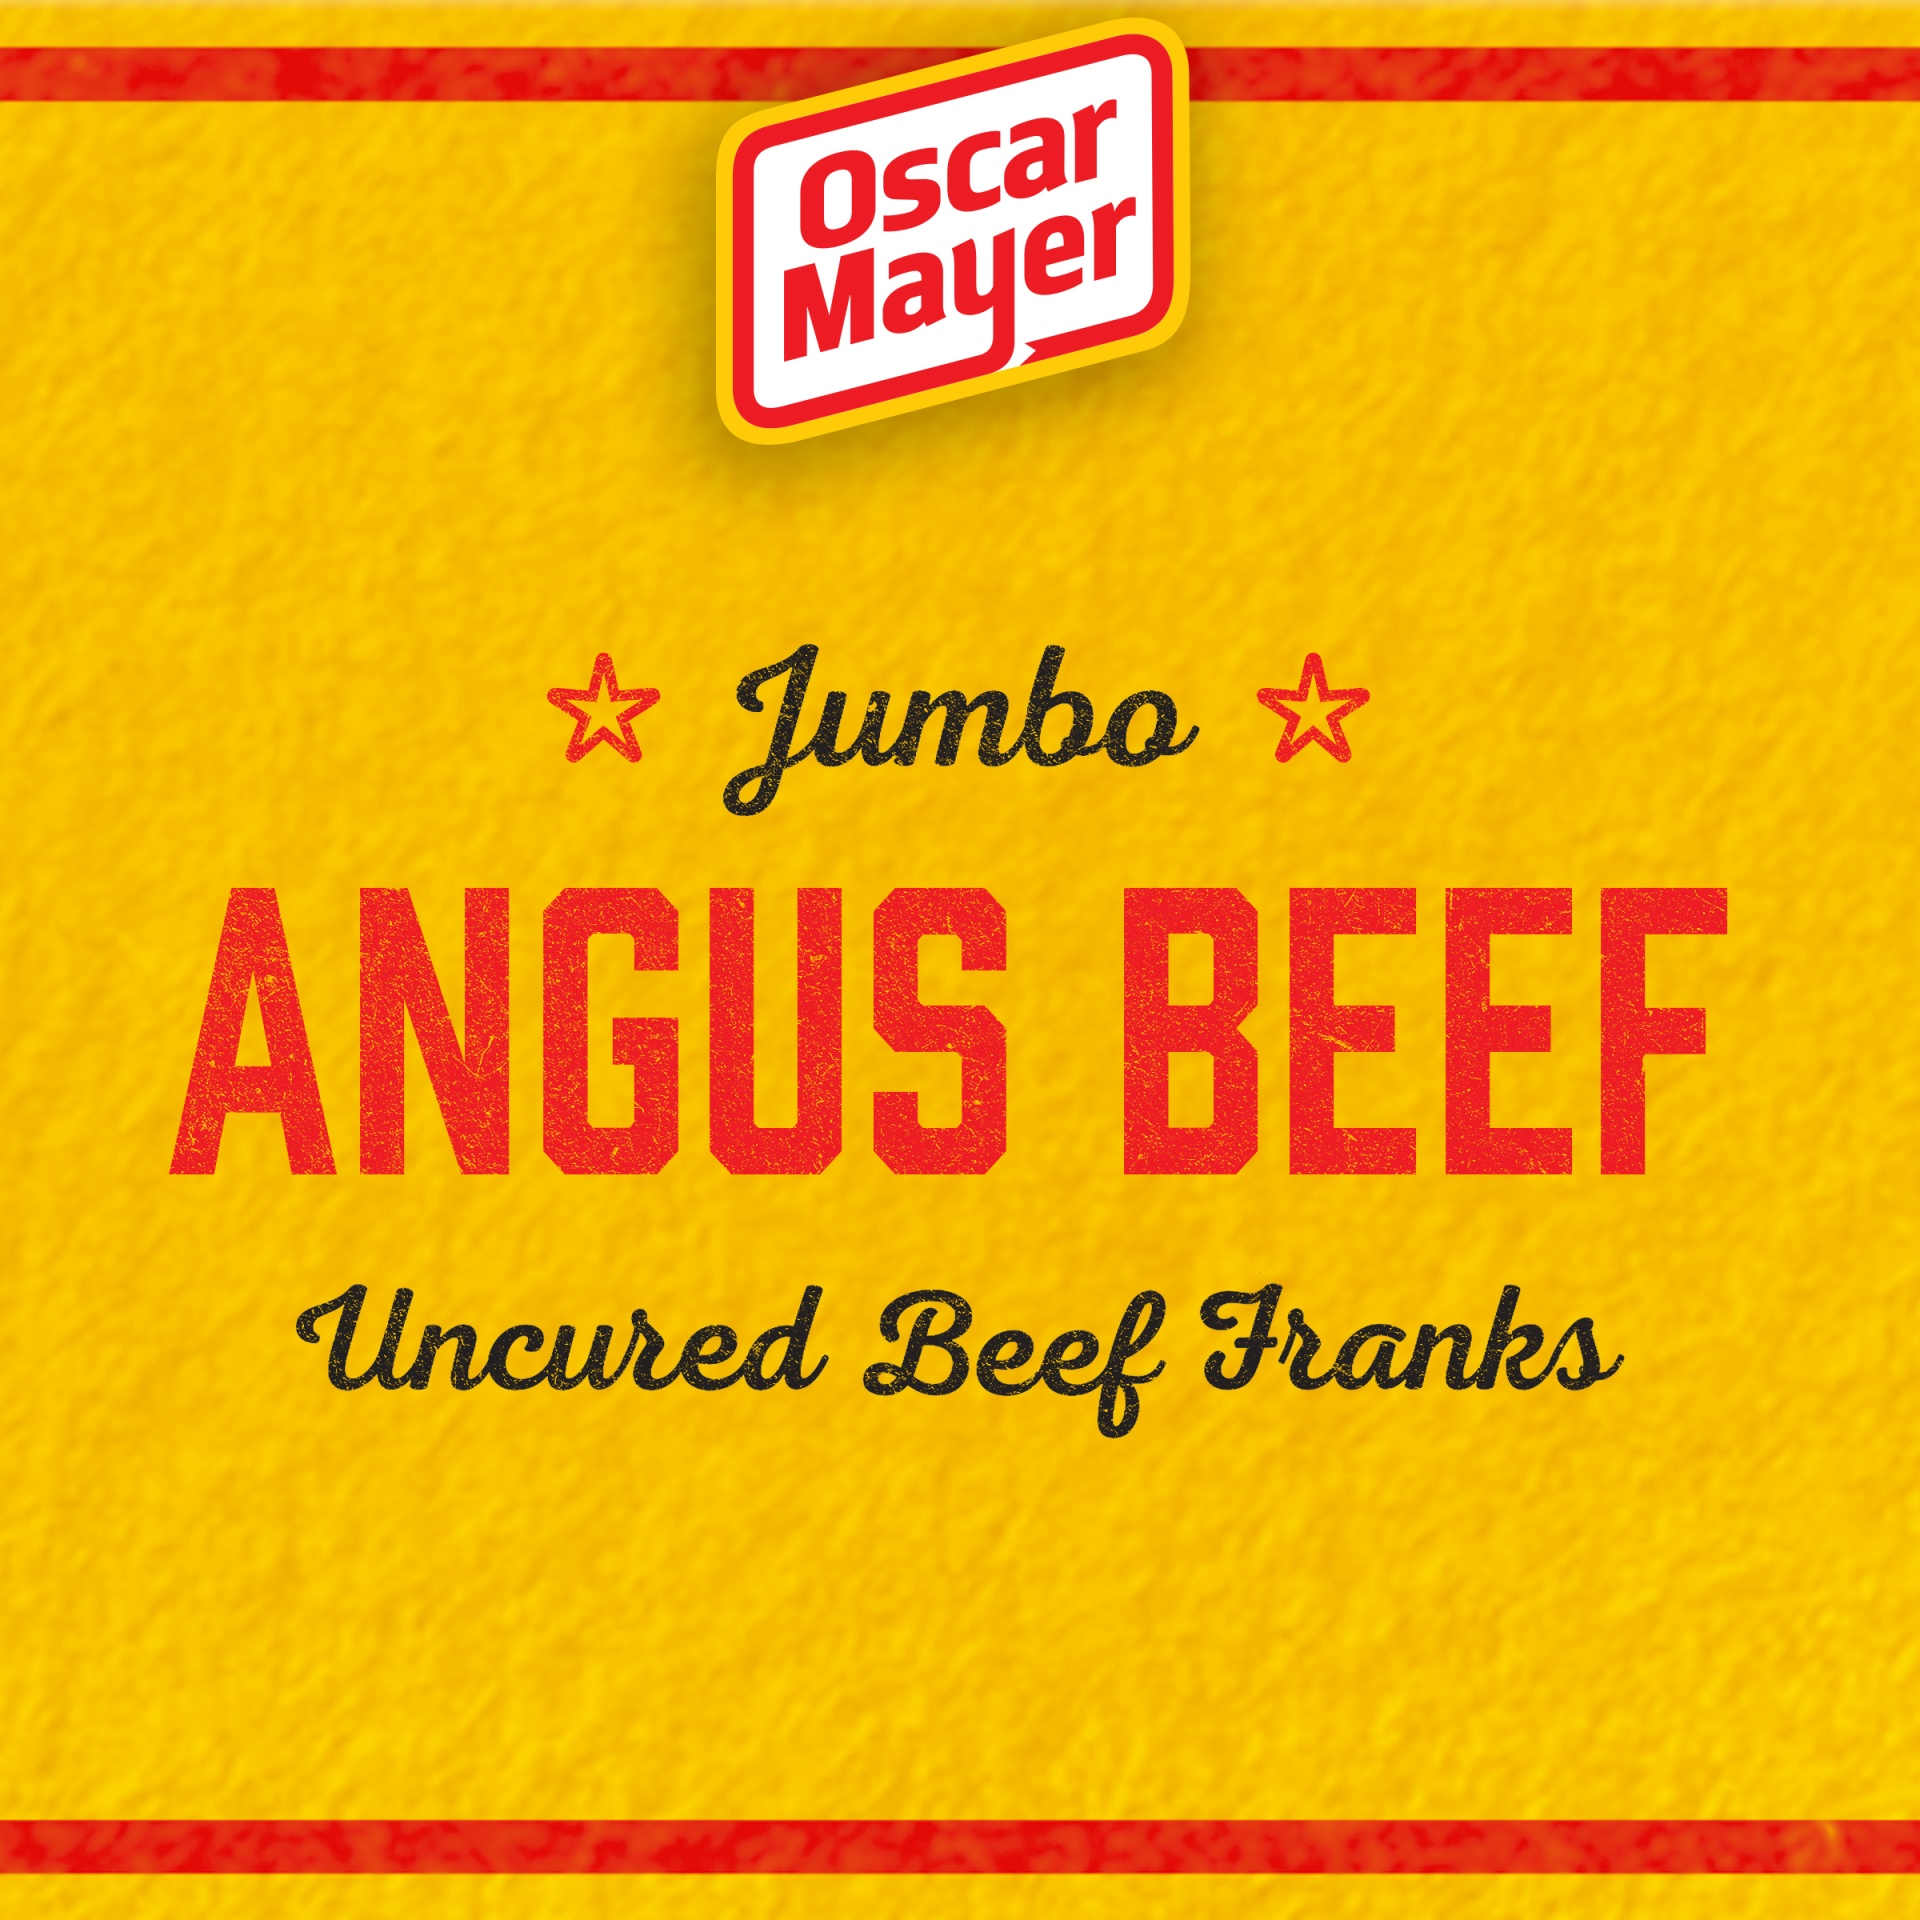 slide 7 of 13, Oscar Mayer Jumbo Angus Beef Uncured Franks 15 oz,